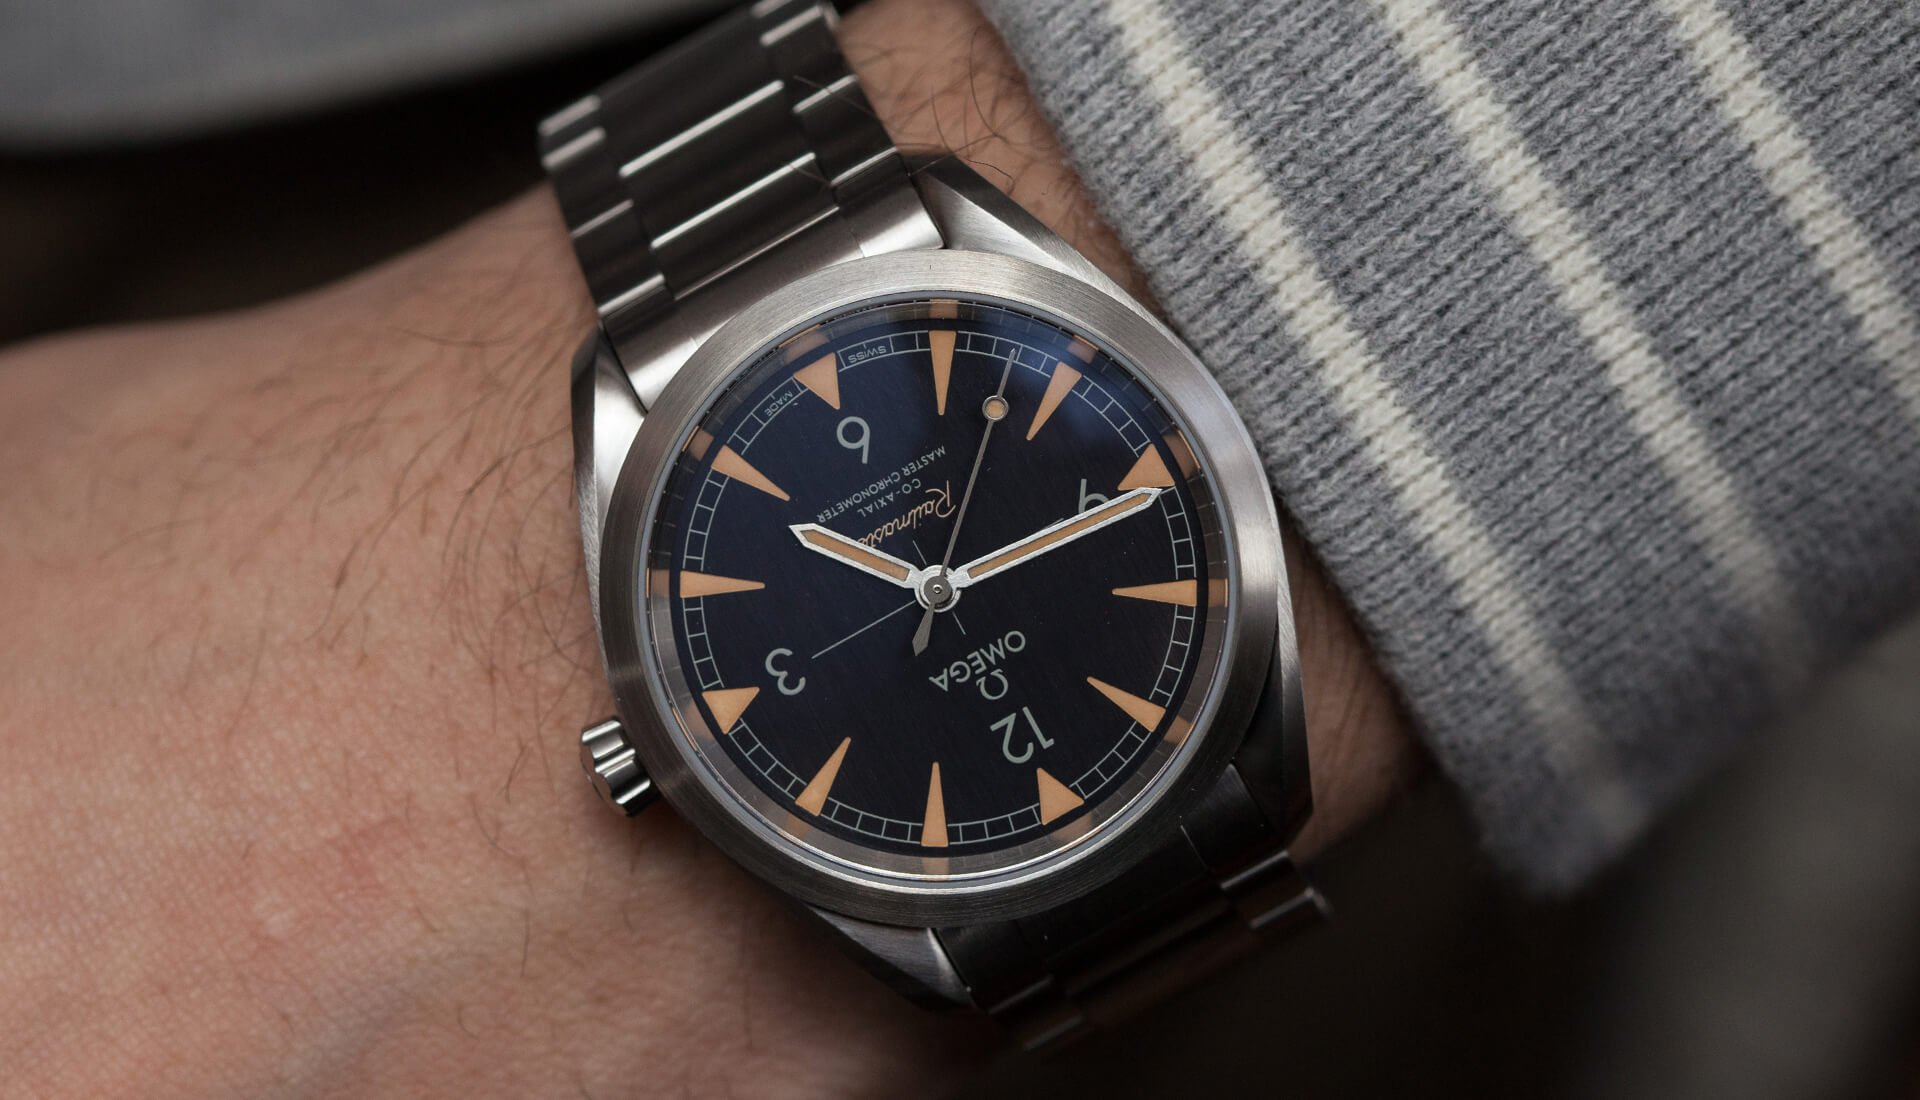 Lug2Lug: A Brand New Omega Railmaster & Vintage Constellation